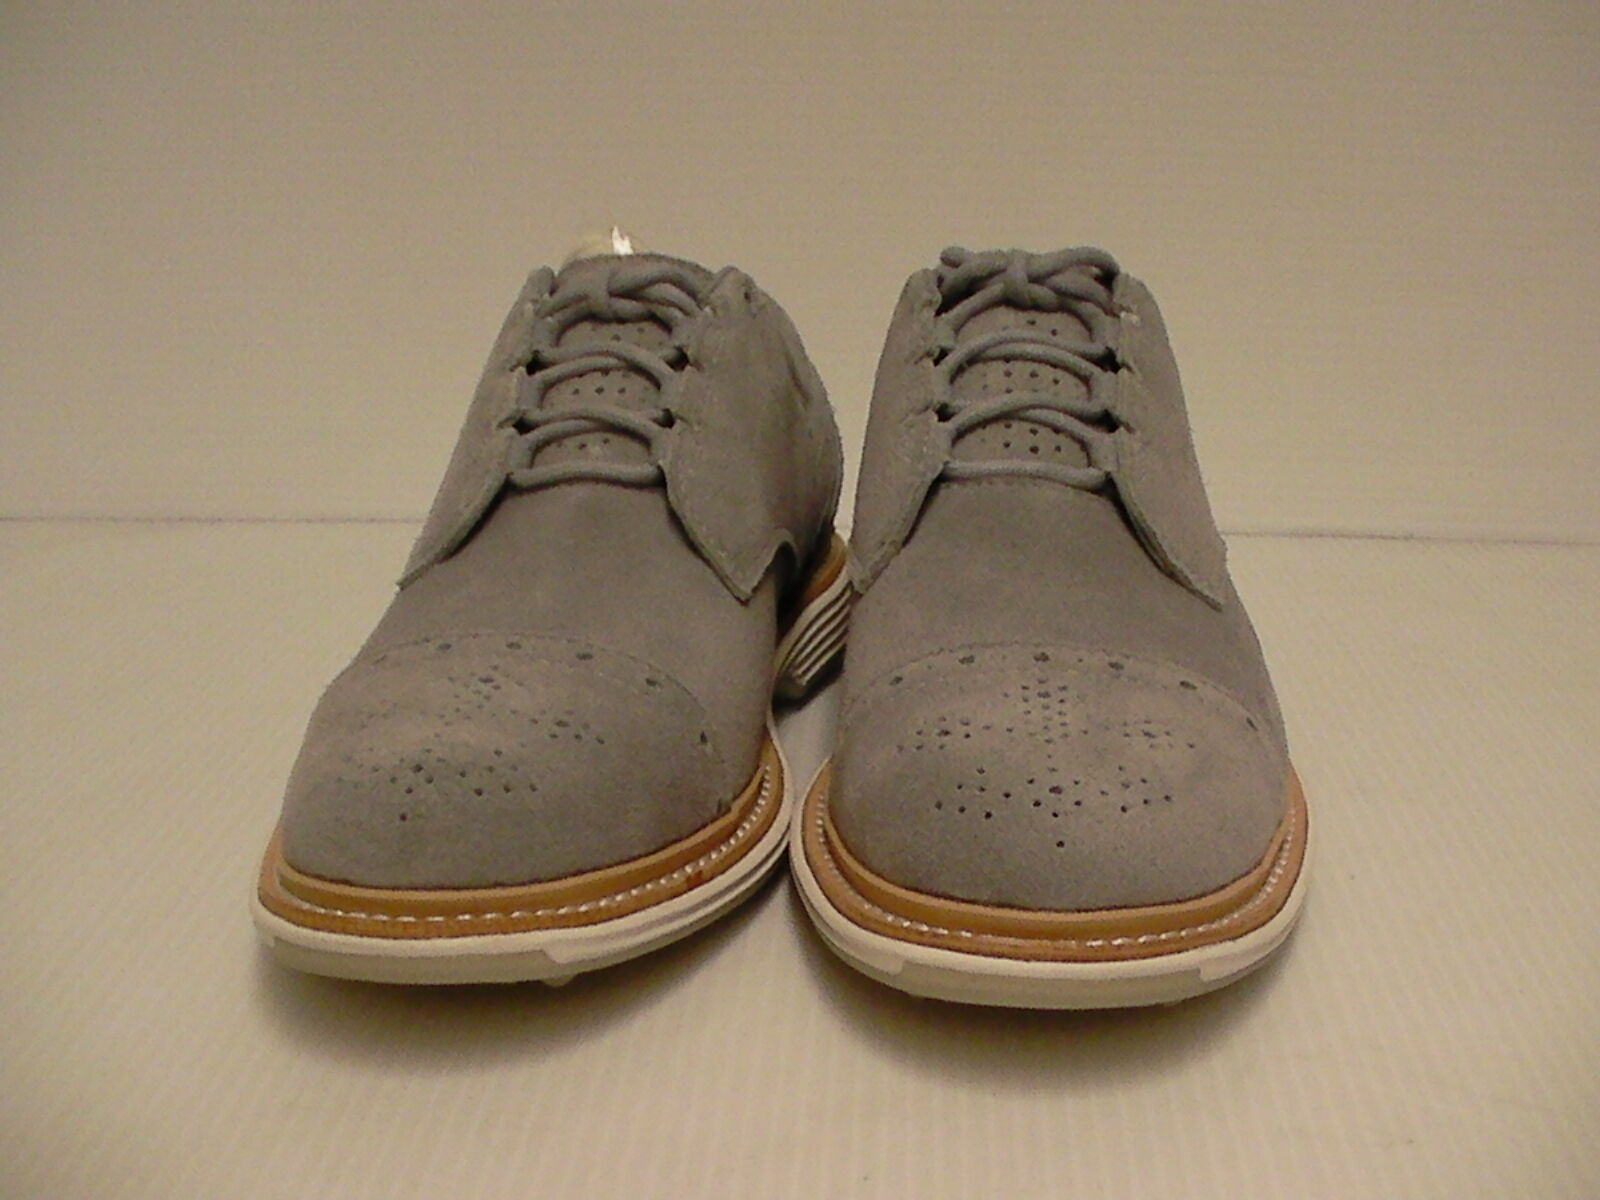 Nike lunar clayton golf chaussures  gris wolf Taille Taille Taille 8 us new with box 3dcbd5